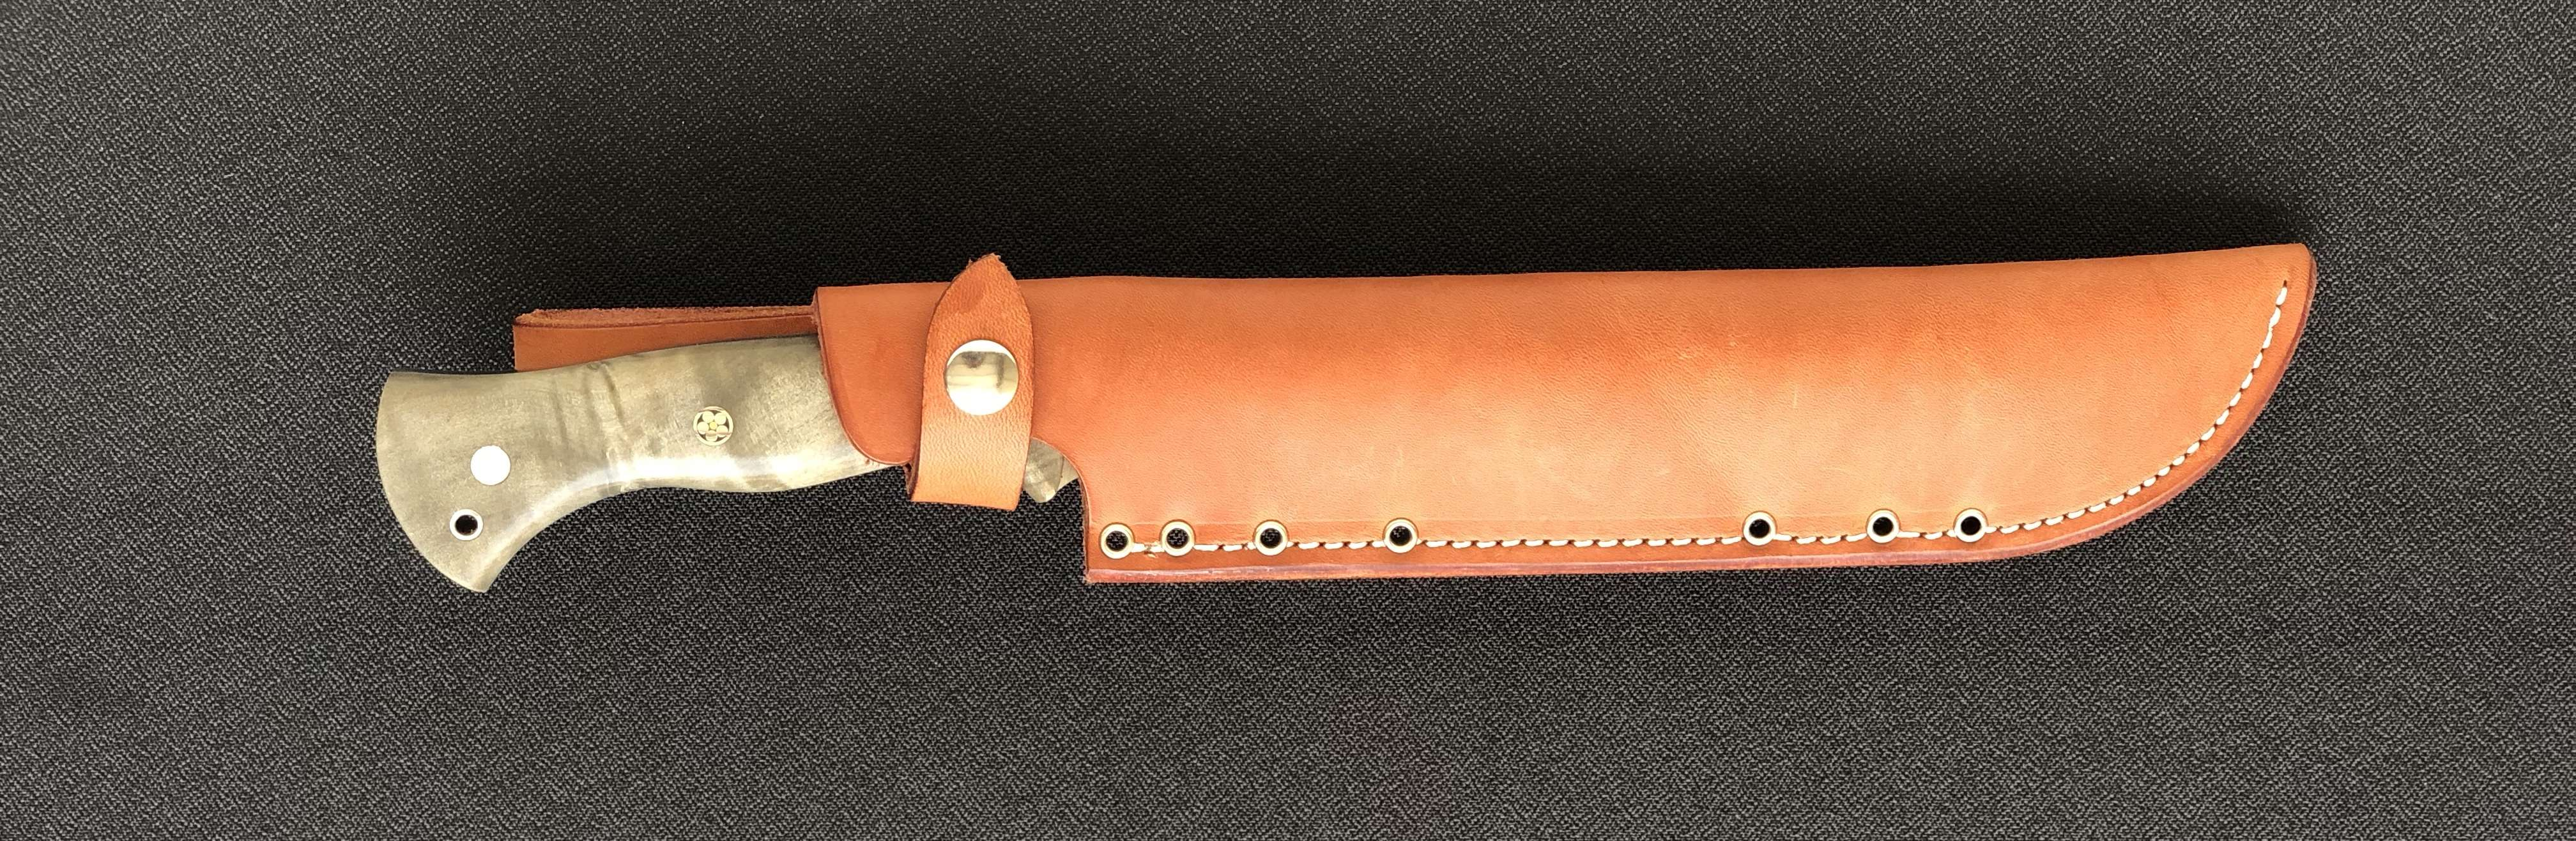 Bark River Grizzly Bowie Knife - 24hourcampfire